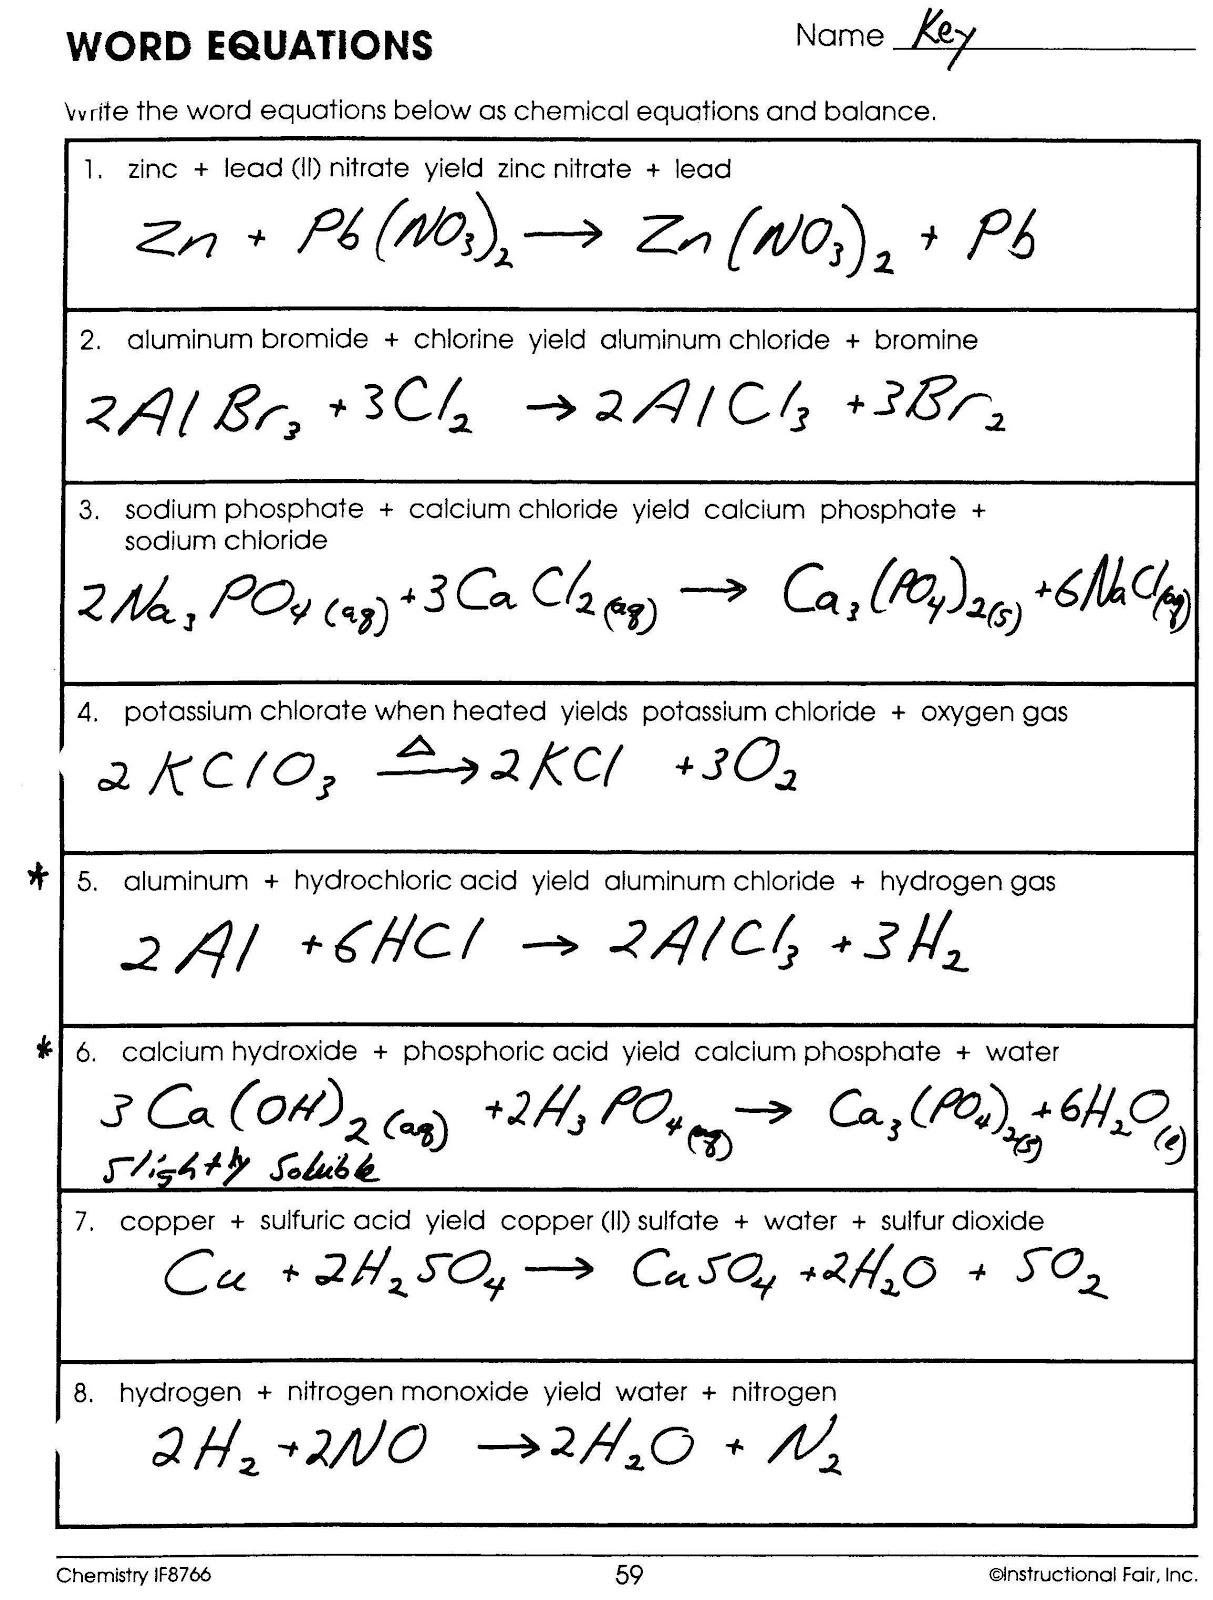 Chemical Equations And Stoichiometry Worksheet Answers ...